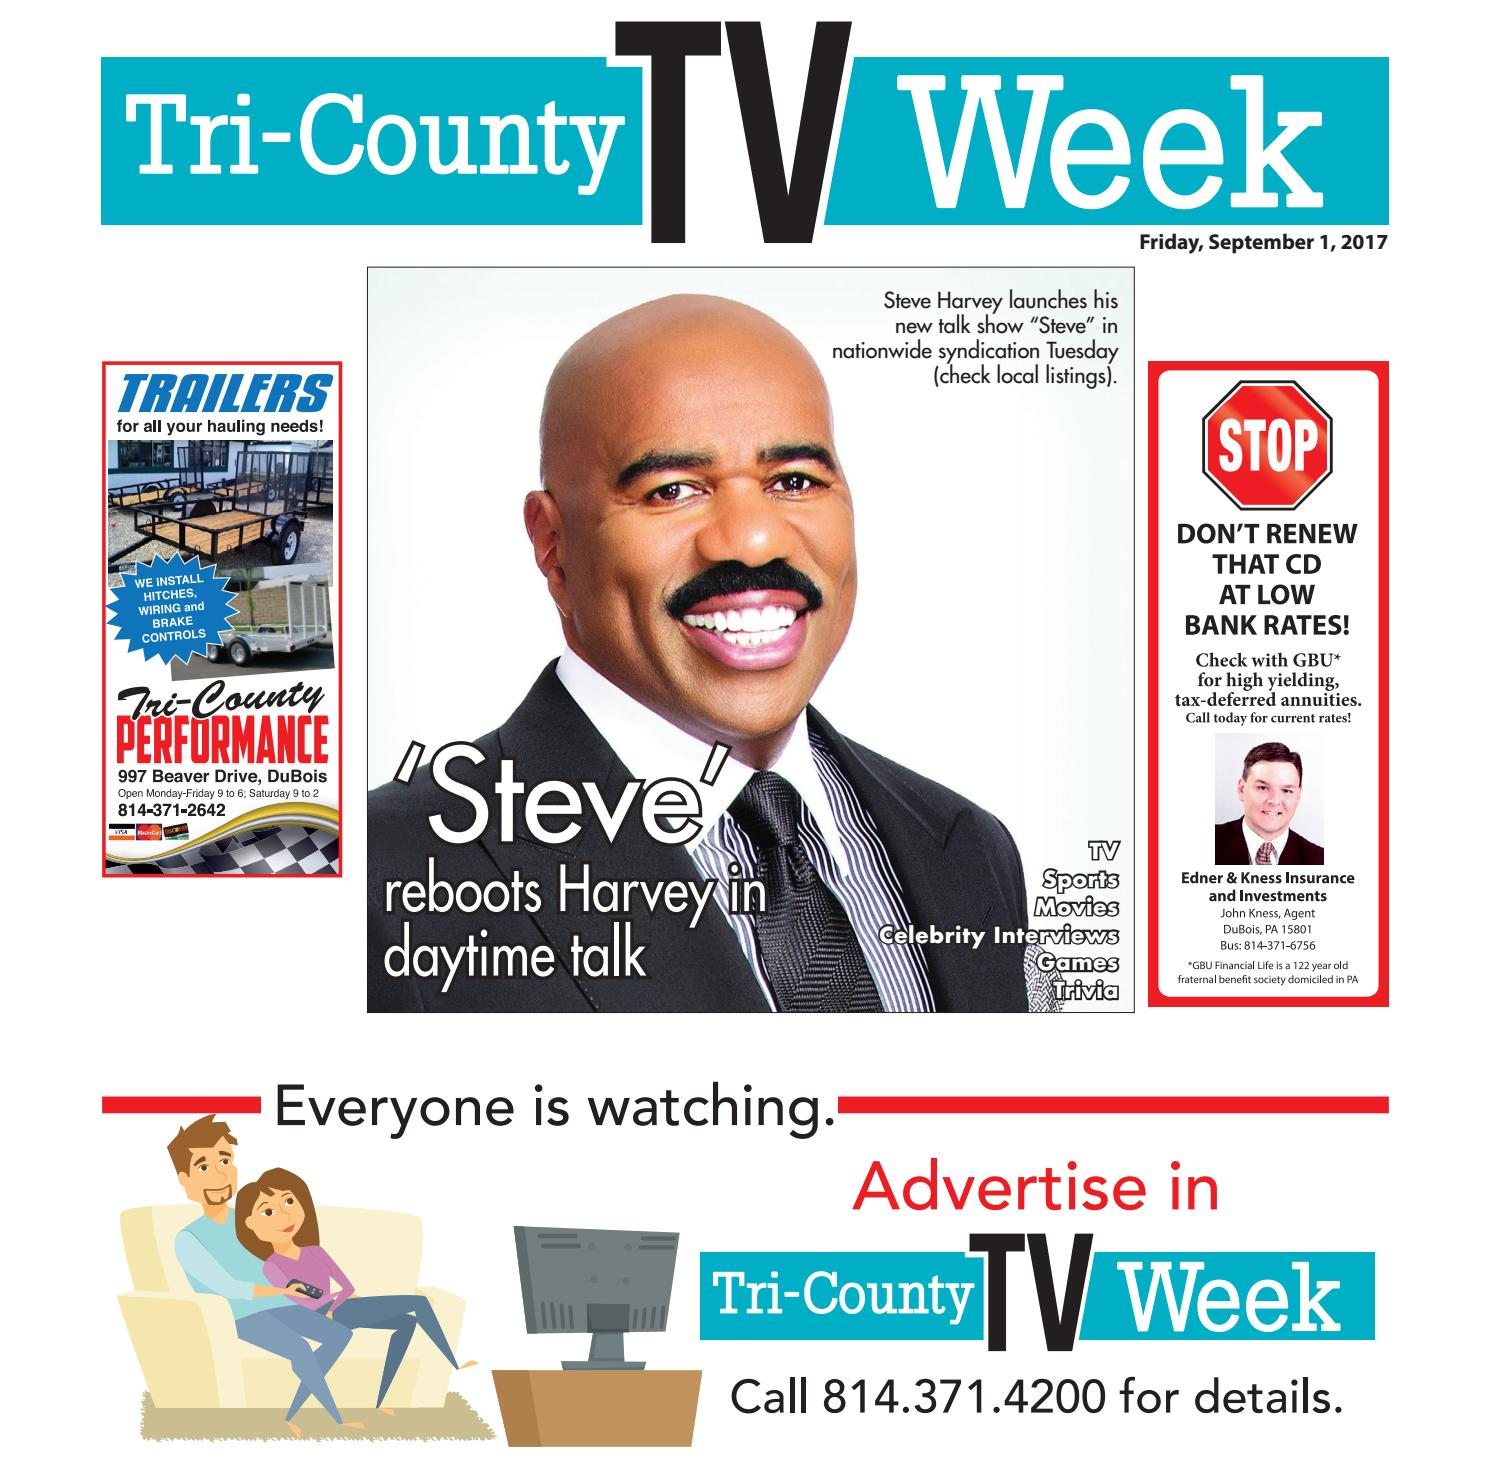 TV Week 09/01/2017 by Tri-County TV Week - issuu